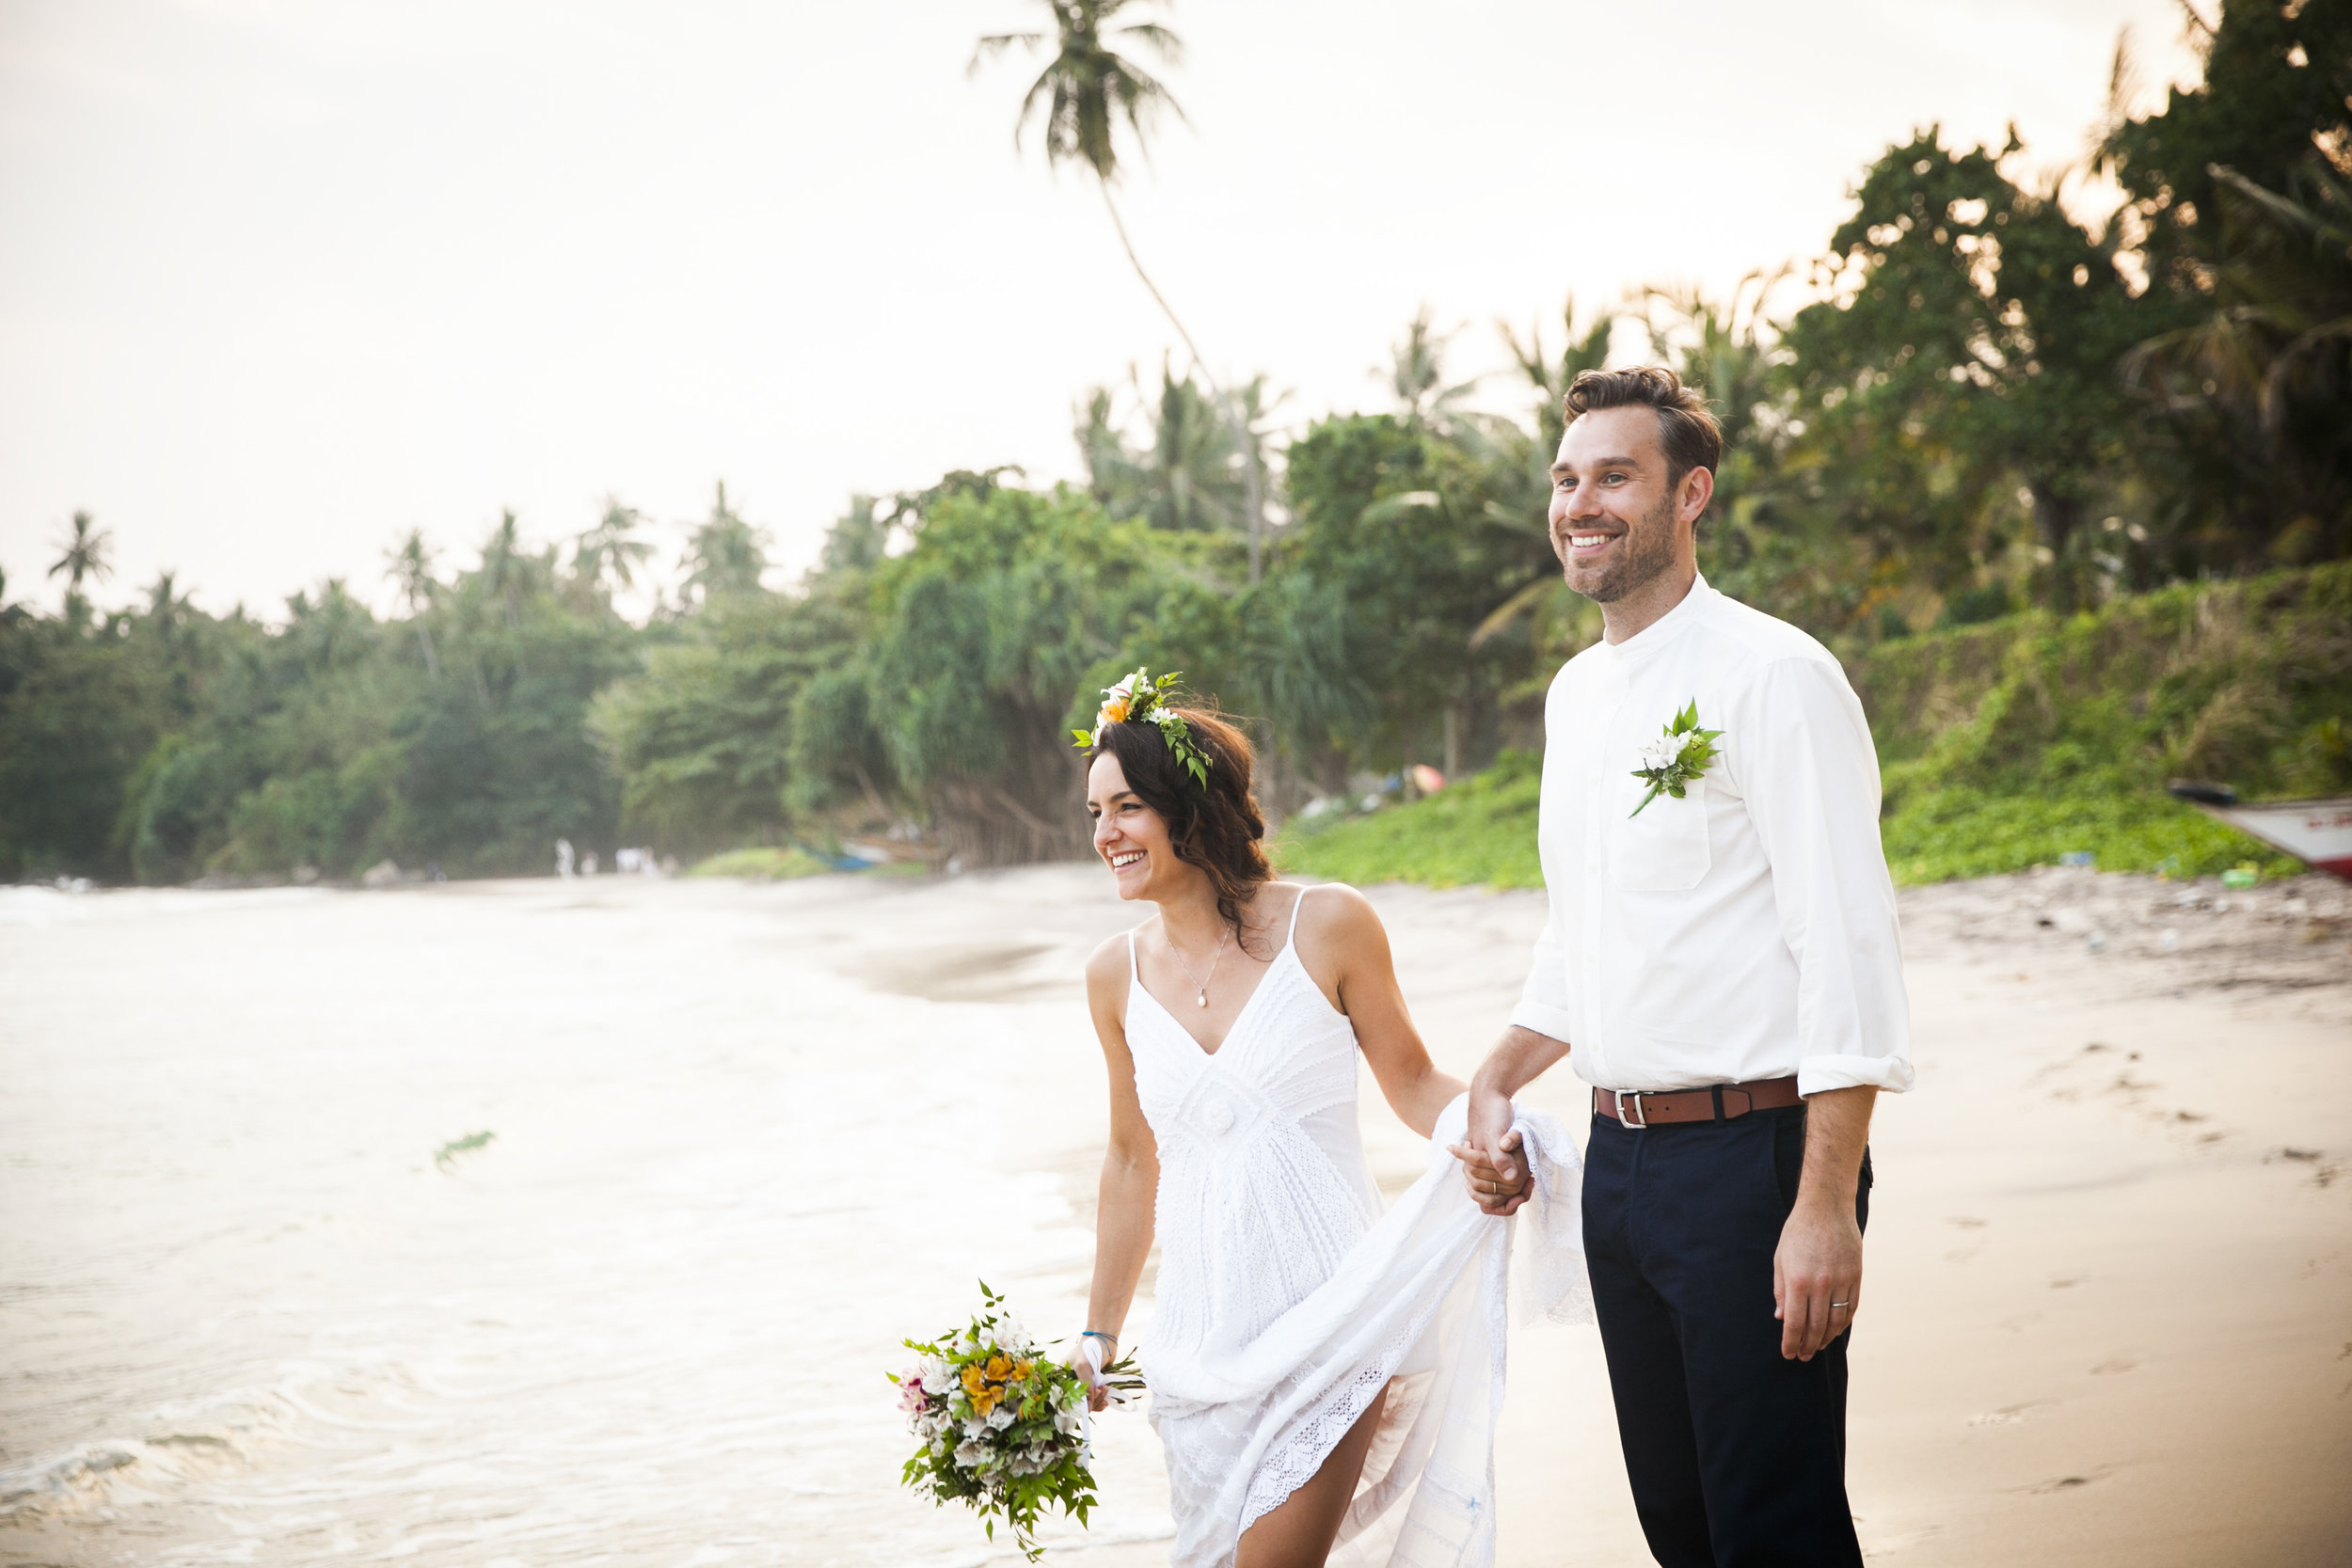 """""""Jeremy effortlessly captured so many magical moments from our wedding day in Sri Lanka. He is so relaxed and discreet and we honestly didn't notice he was taking all the photos that he did. We wanted a relaxed style to match our beach wedding and Jeremy really delivered professionally and with expert results - we are completely blown away! Thank you Jeremy for telling our story in pictures! We are so so happy! - Kelly & Stuart, Sri Lanka"""